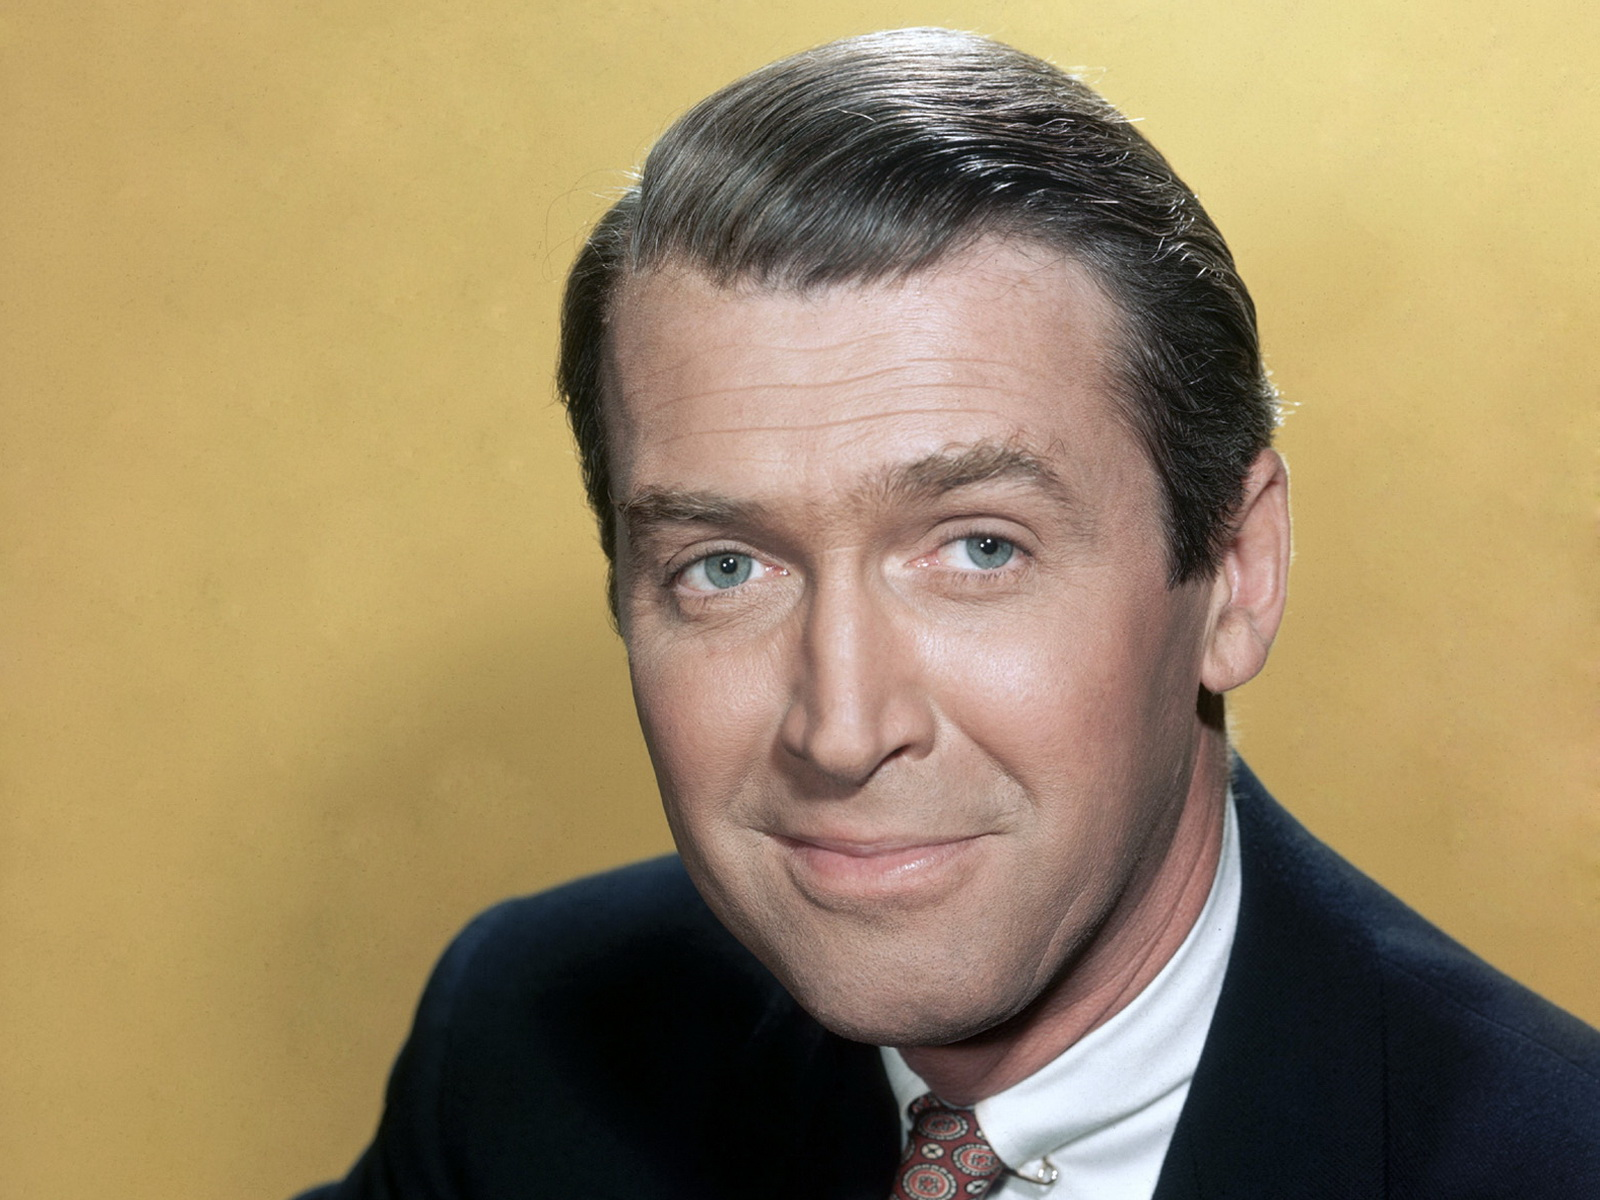 James Stewart hd wallpaper Wallpaper